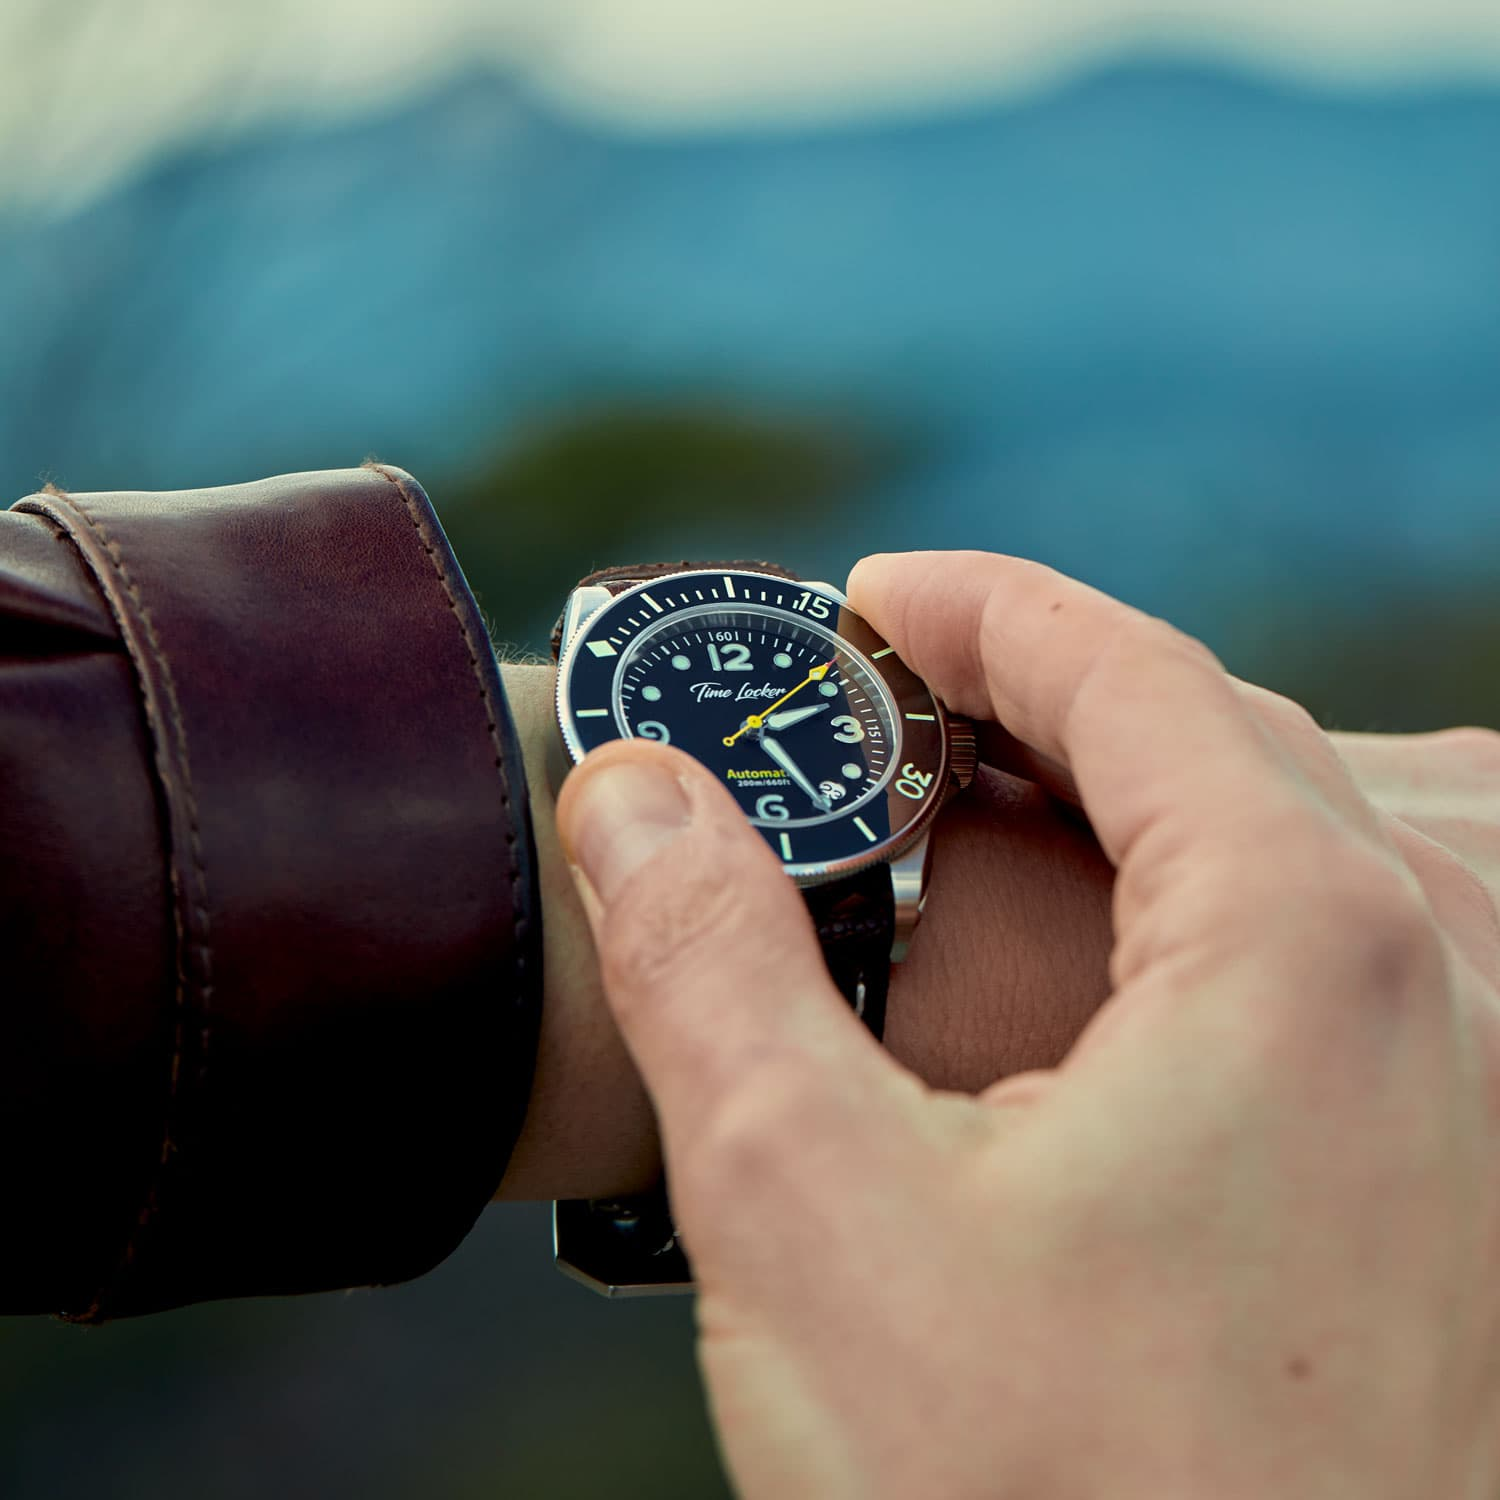 Dive watch with ceramic bezel